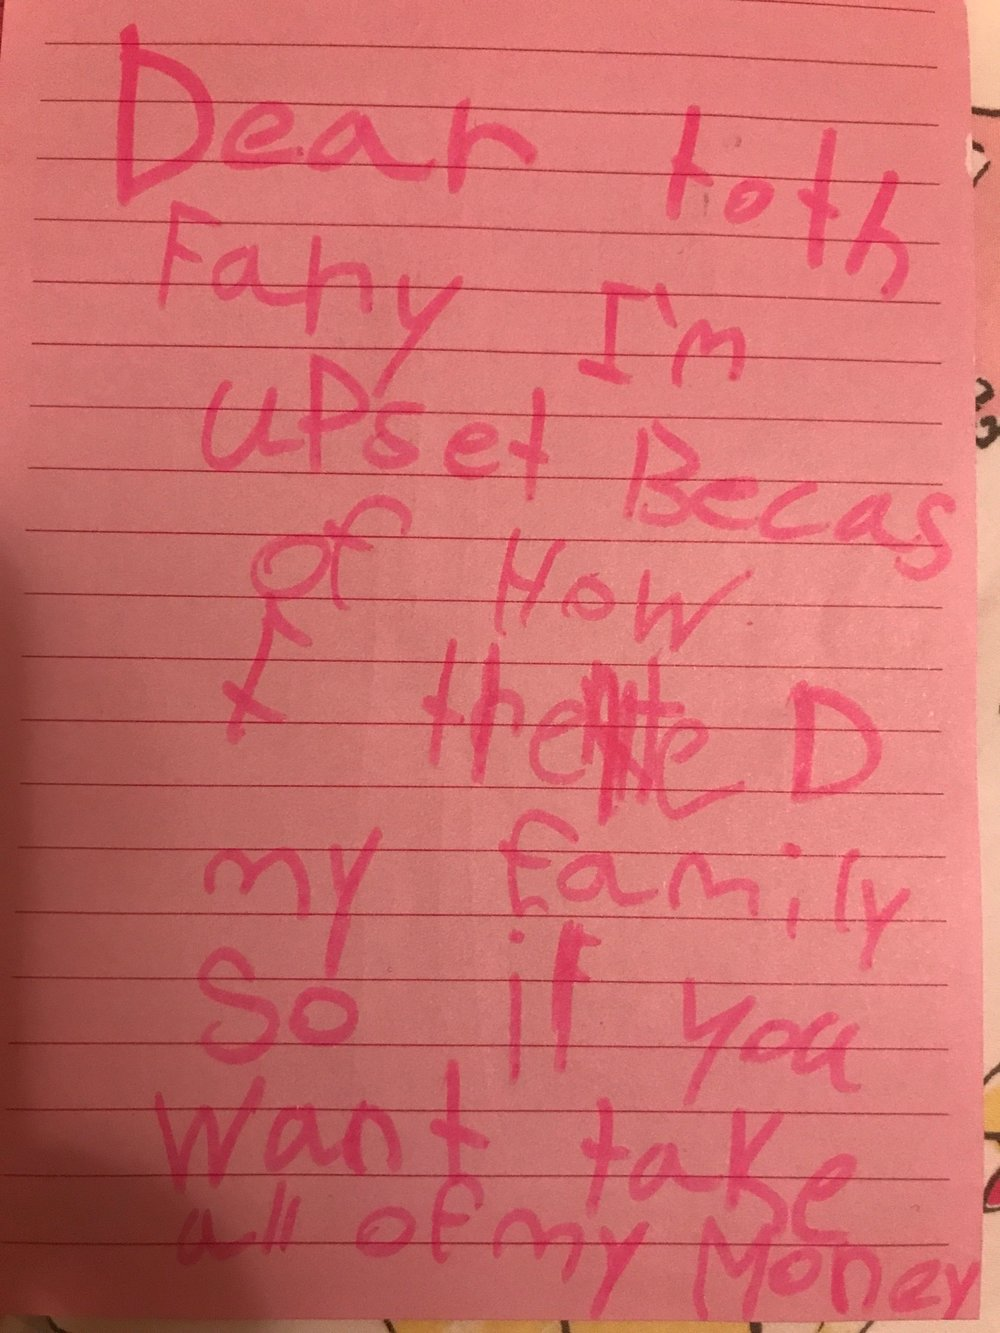 Dear Tooth Fairy, I'm upset because of how I treated my family. So if you want, take all of my money.